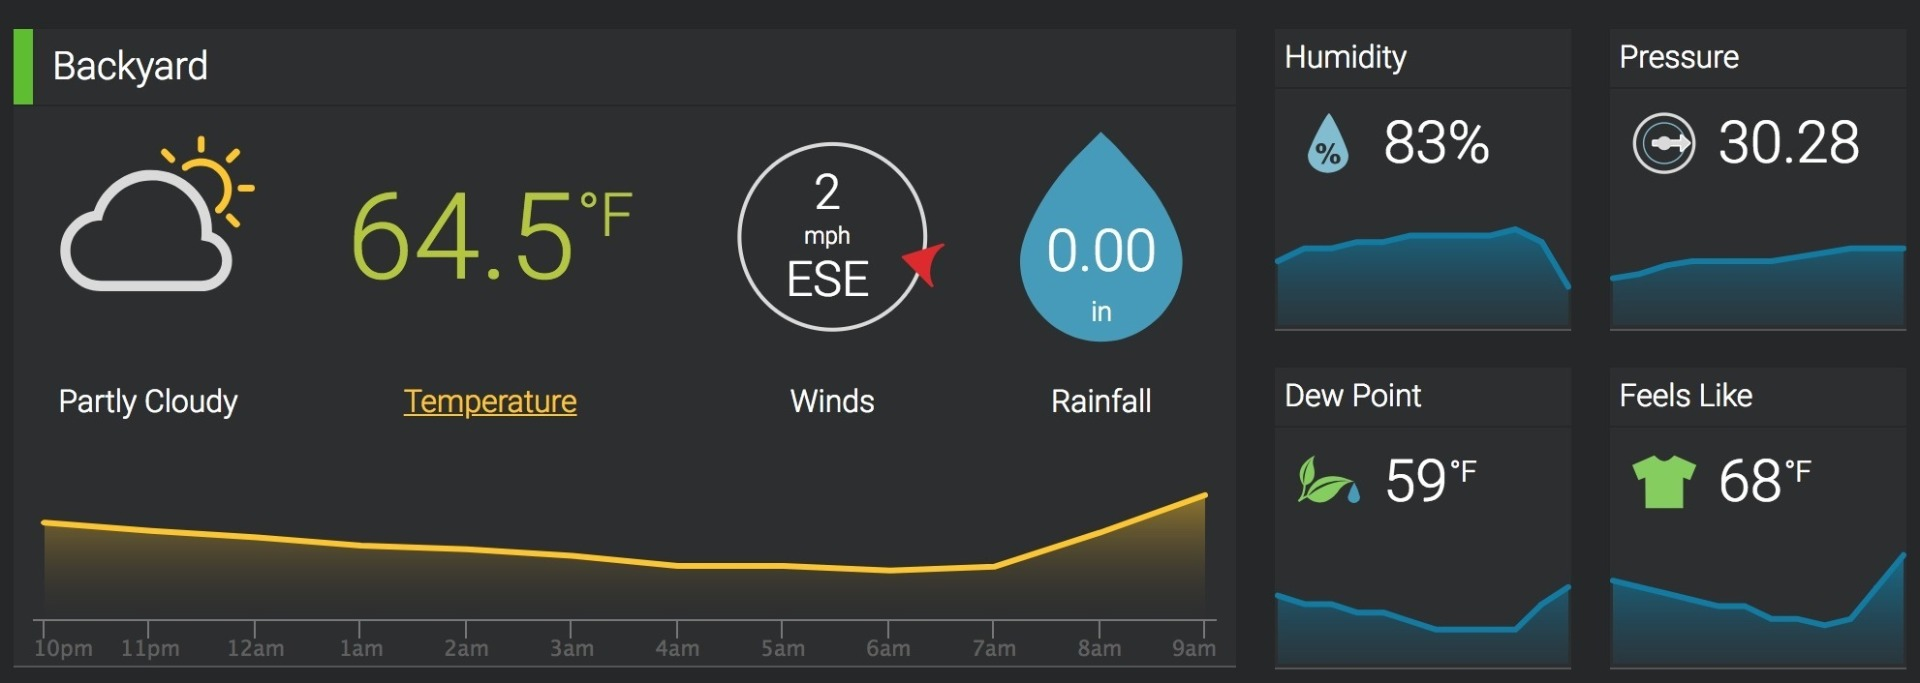 My AcuRite screenshot - Backyard weather station